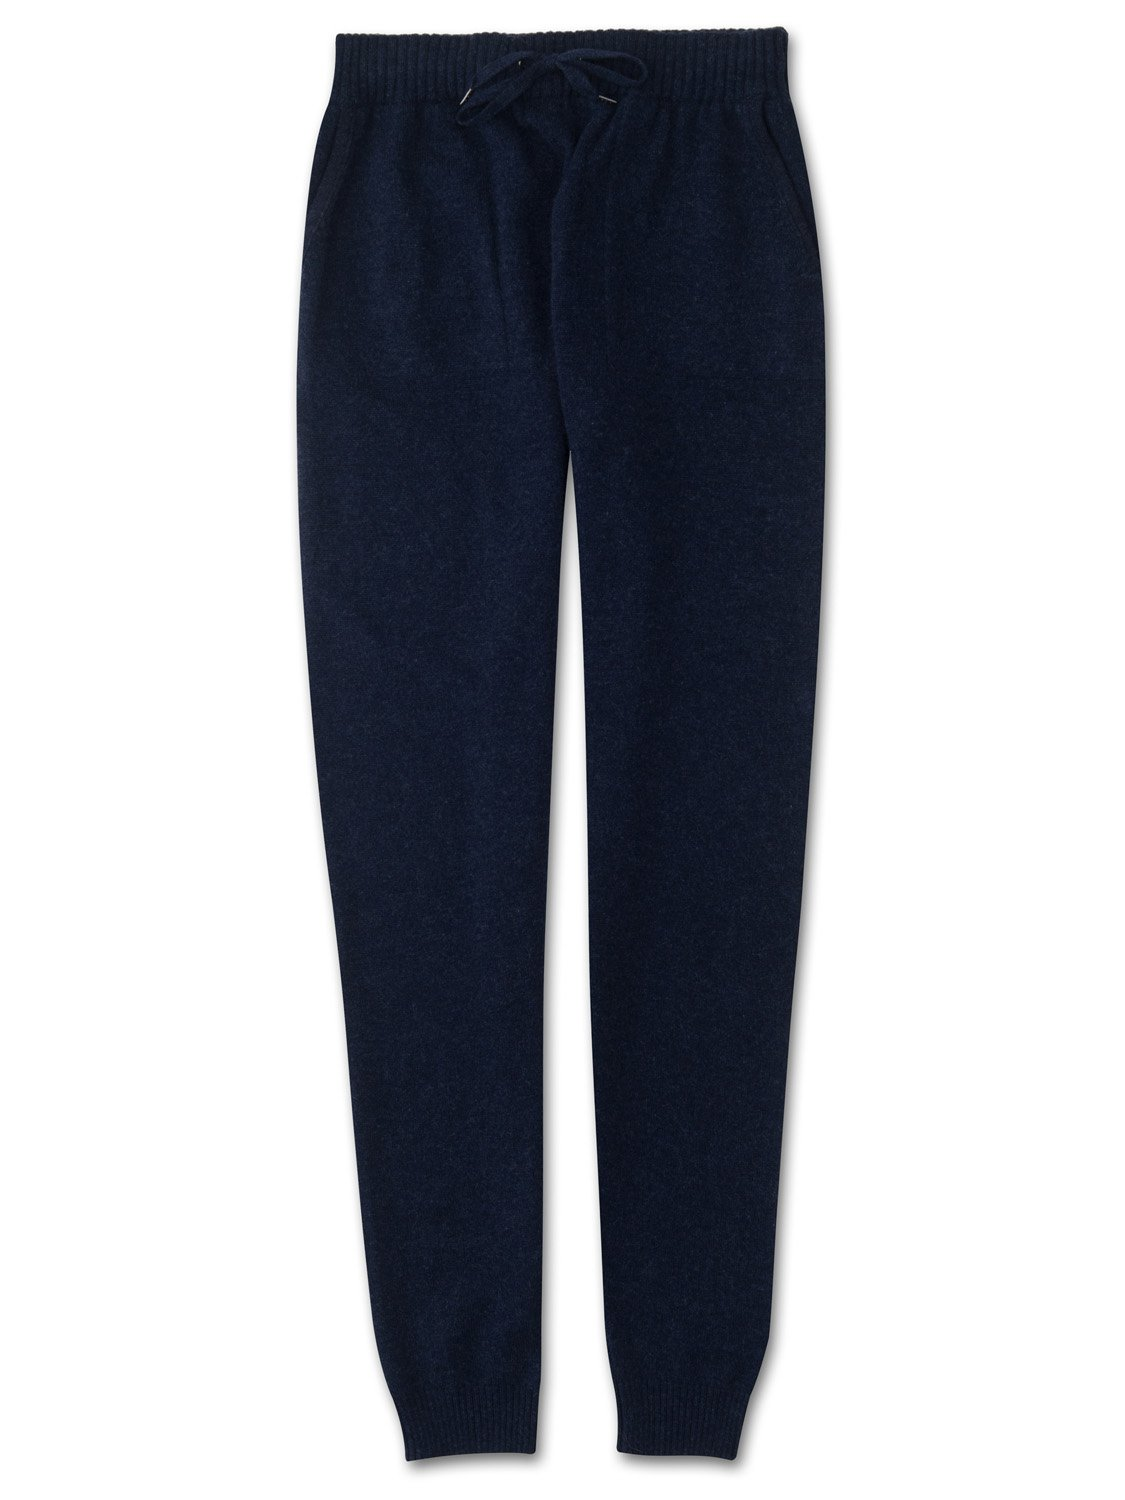 Women's Cashmere Track Pants Finley Pure Cashmere Midnight